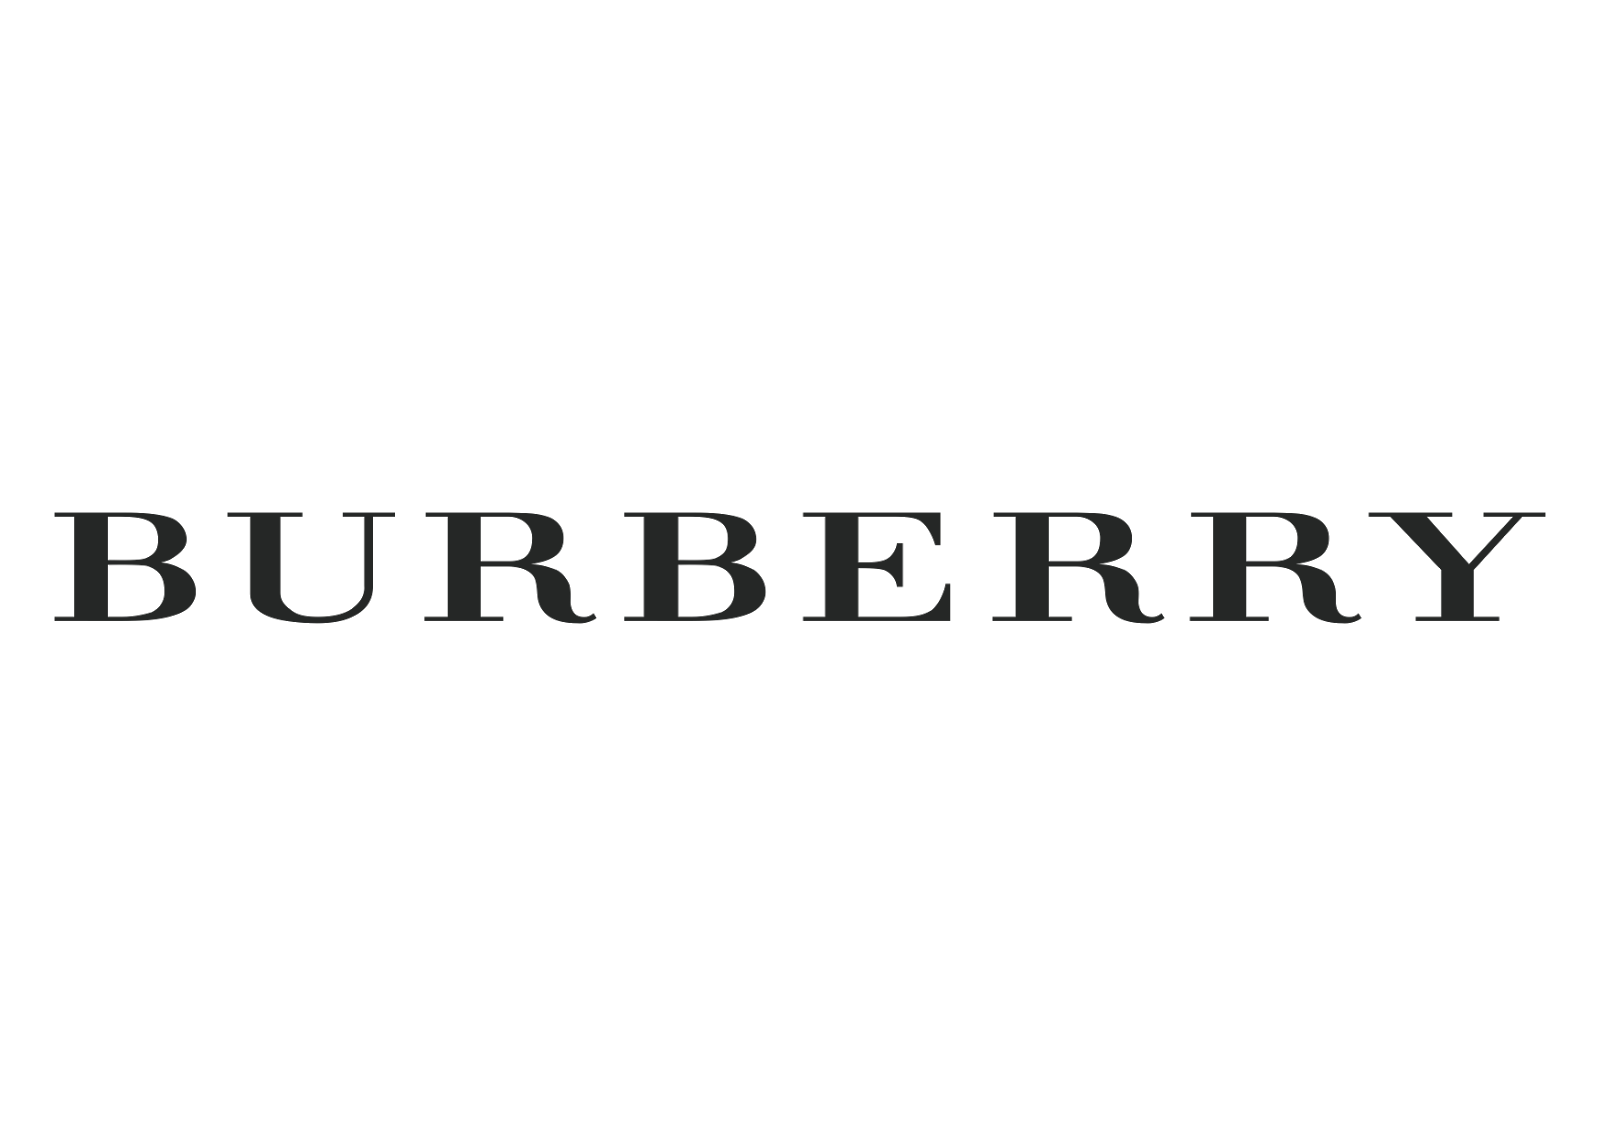 burberry vector logo design part 2 comit du faubourg saint honor. Black Bedroom Furniture Sets. Home Design Ideas